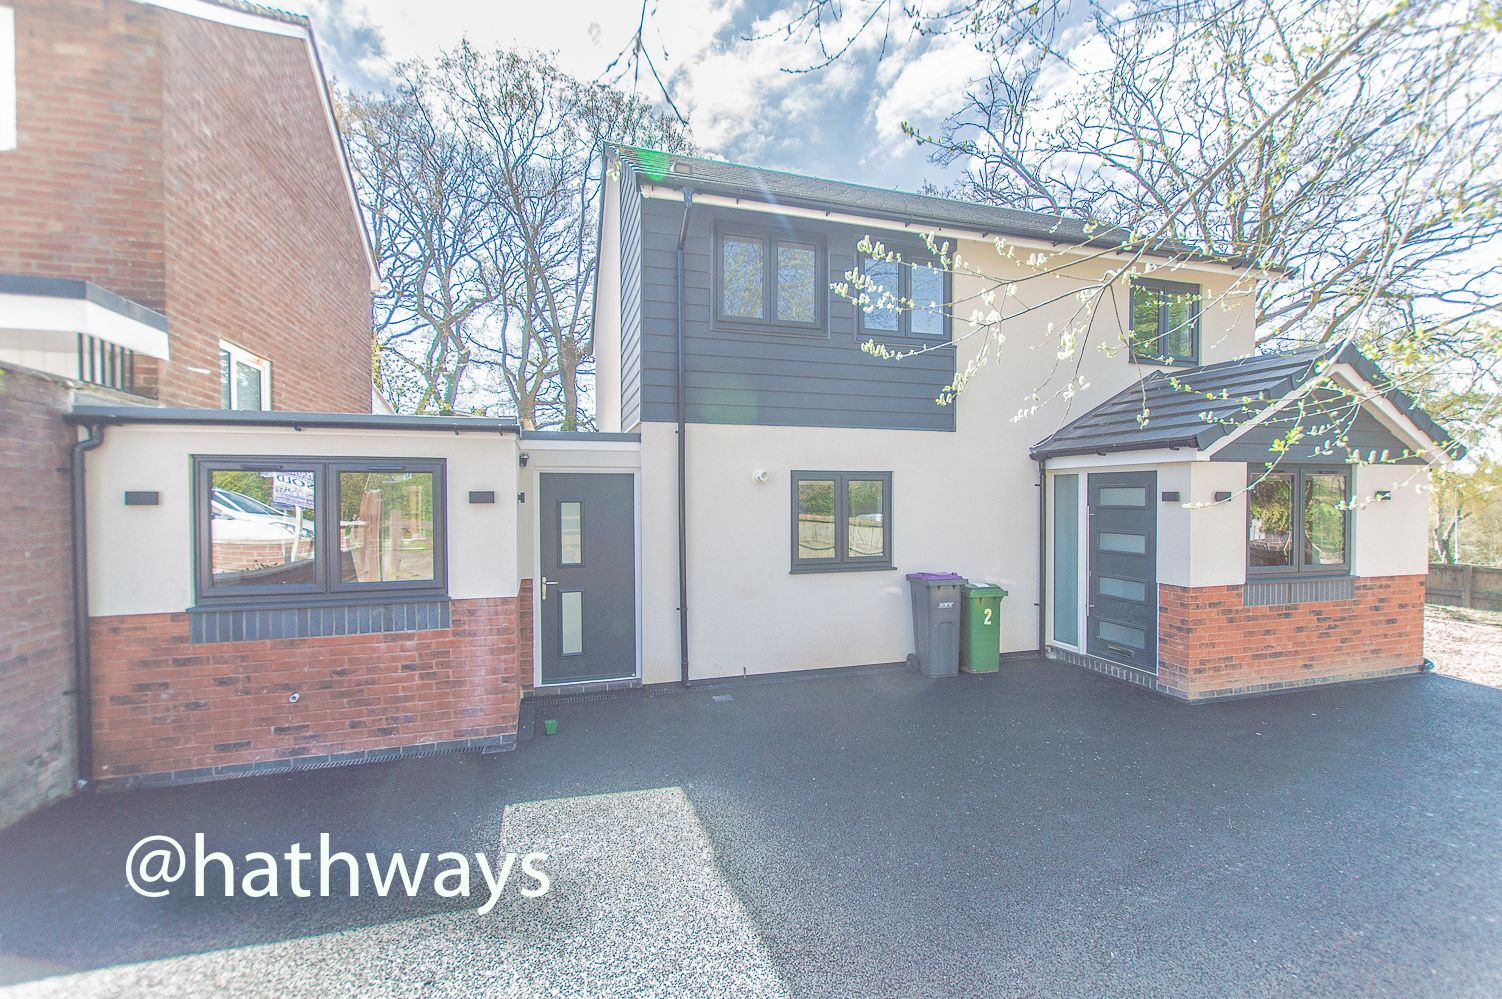 3 bed house for sale in Garw Wood Drive